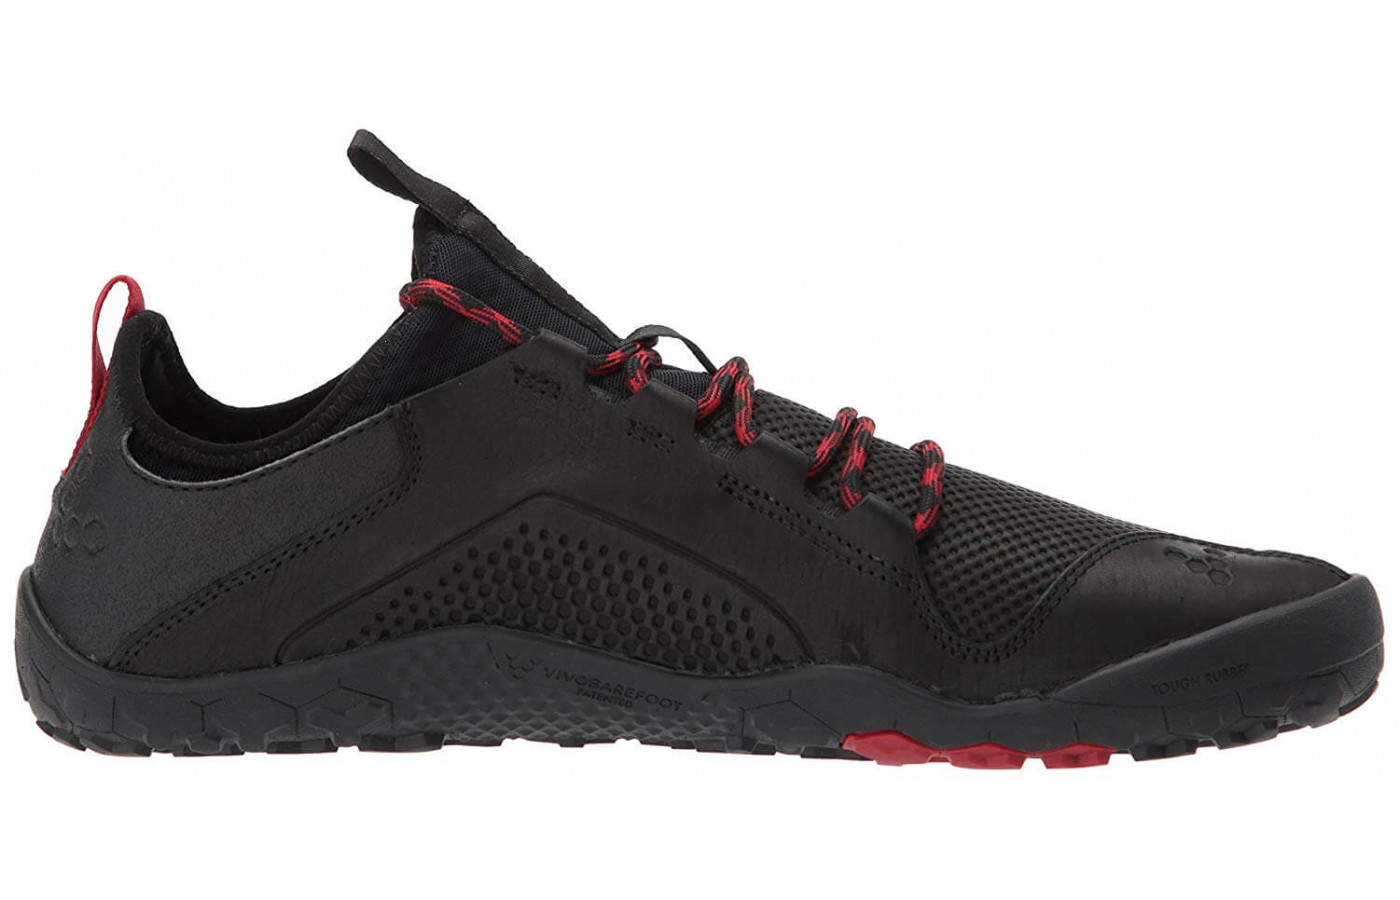 A leather upper gives the Primus Trek a water-resistant wear